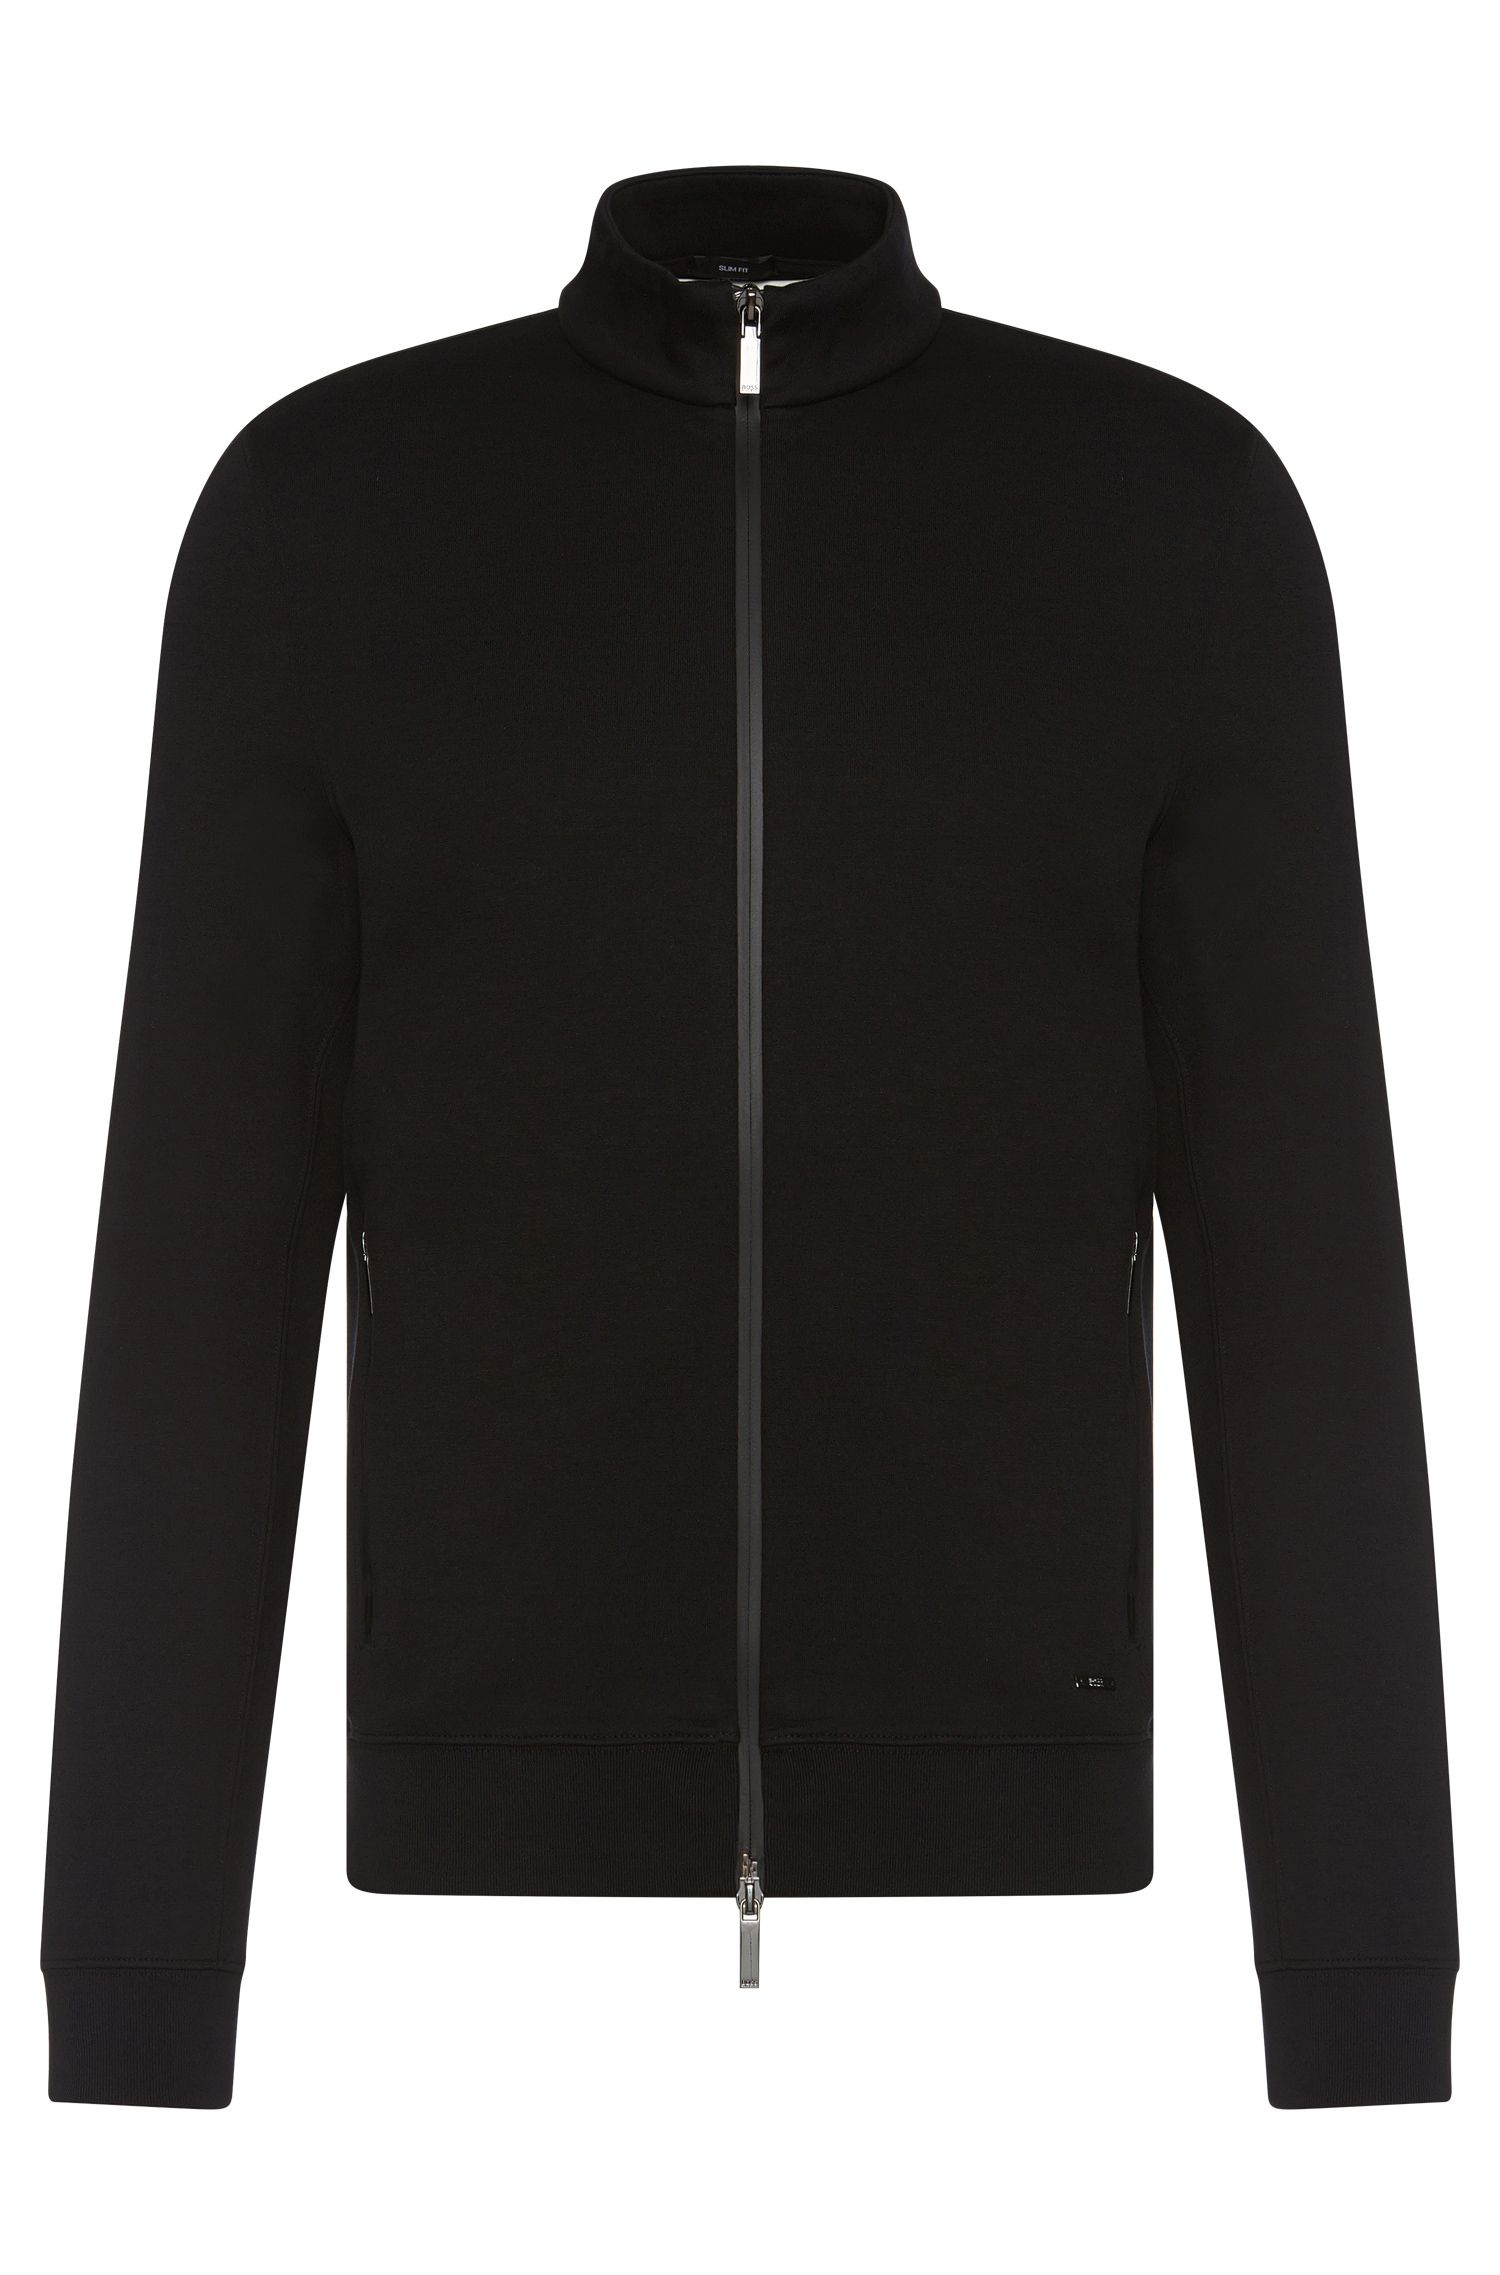 Blouson sweat Slim Fit, en coton mélangé chiné : « Soule 06 »